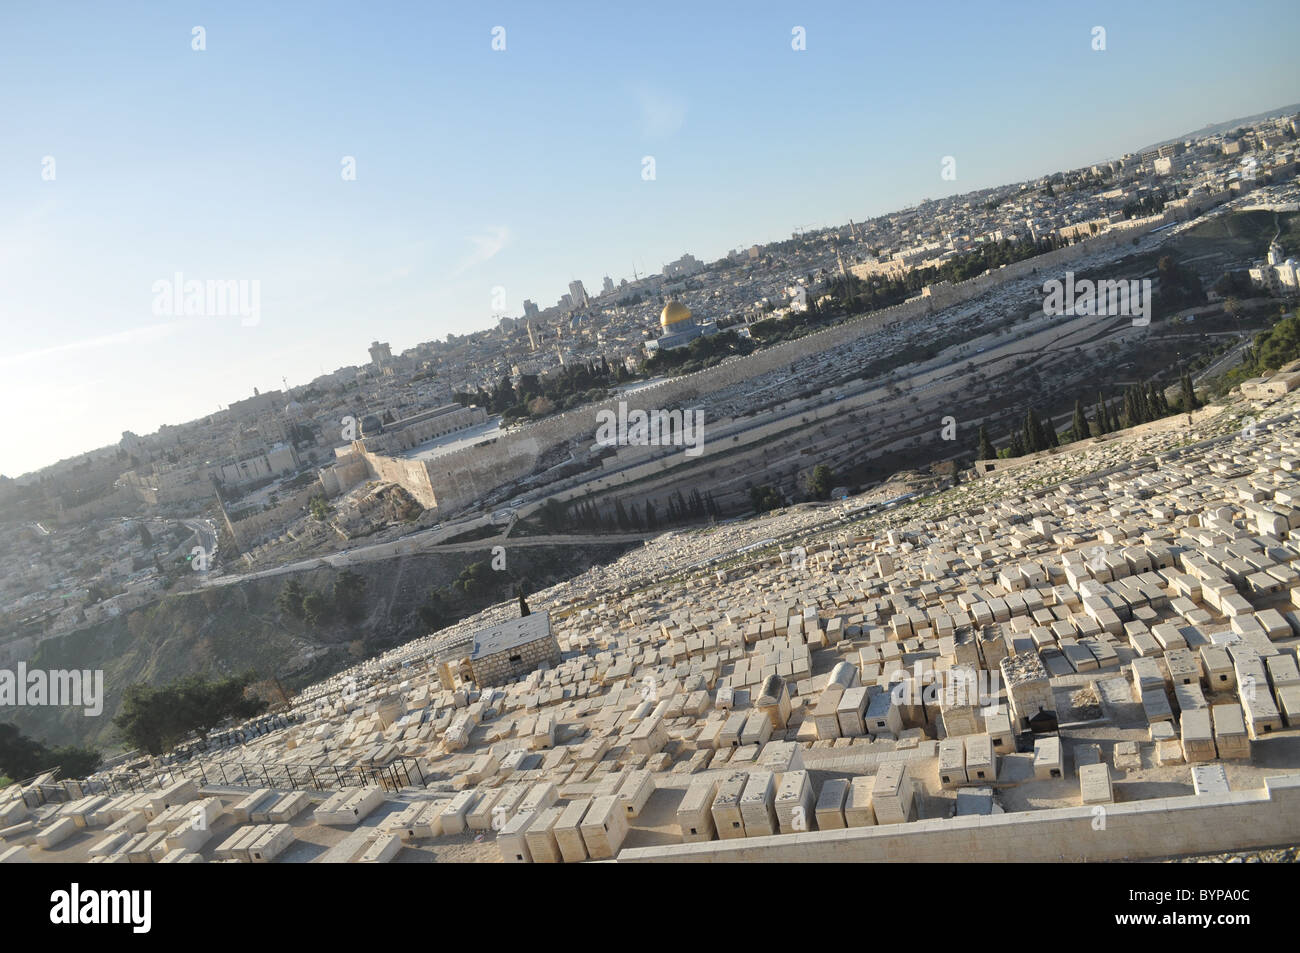 Jerusalem: Temple mount panoramic view from mount of olives - Stock Image